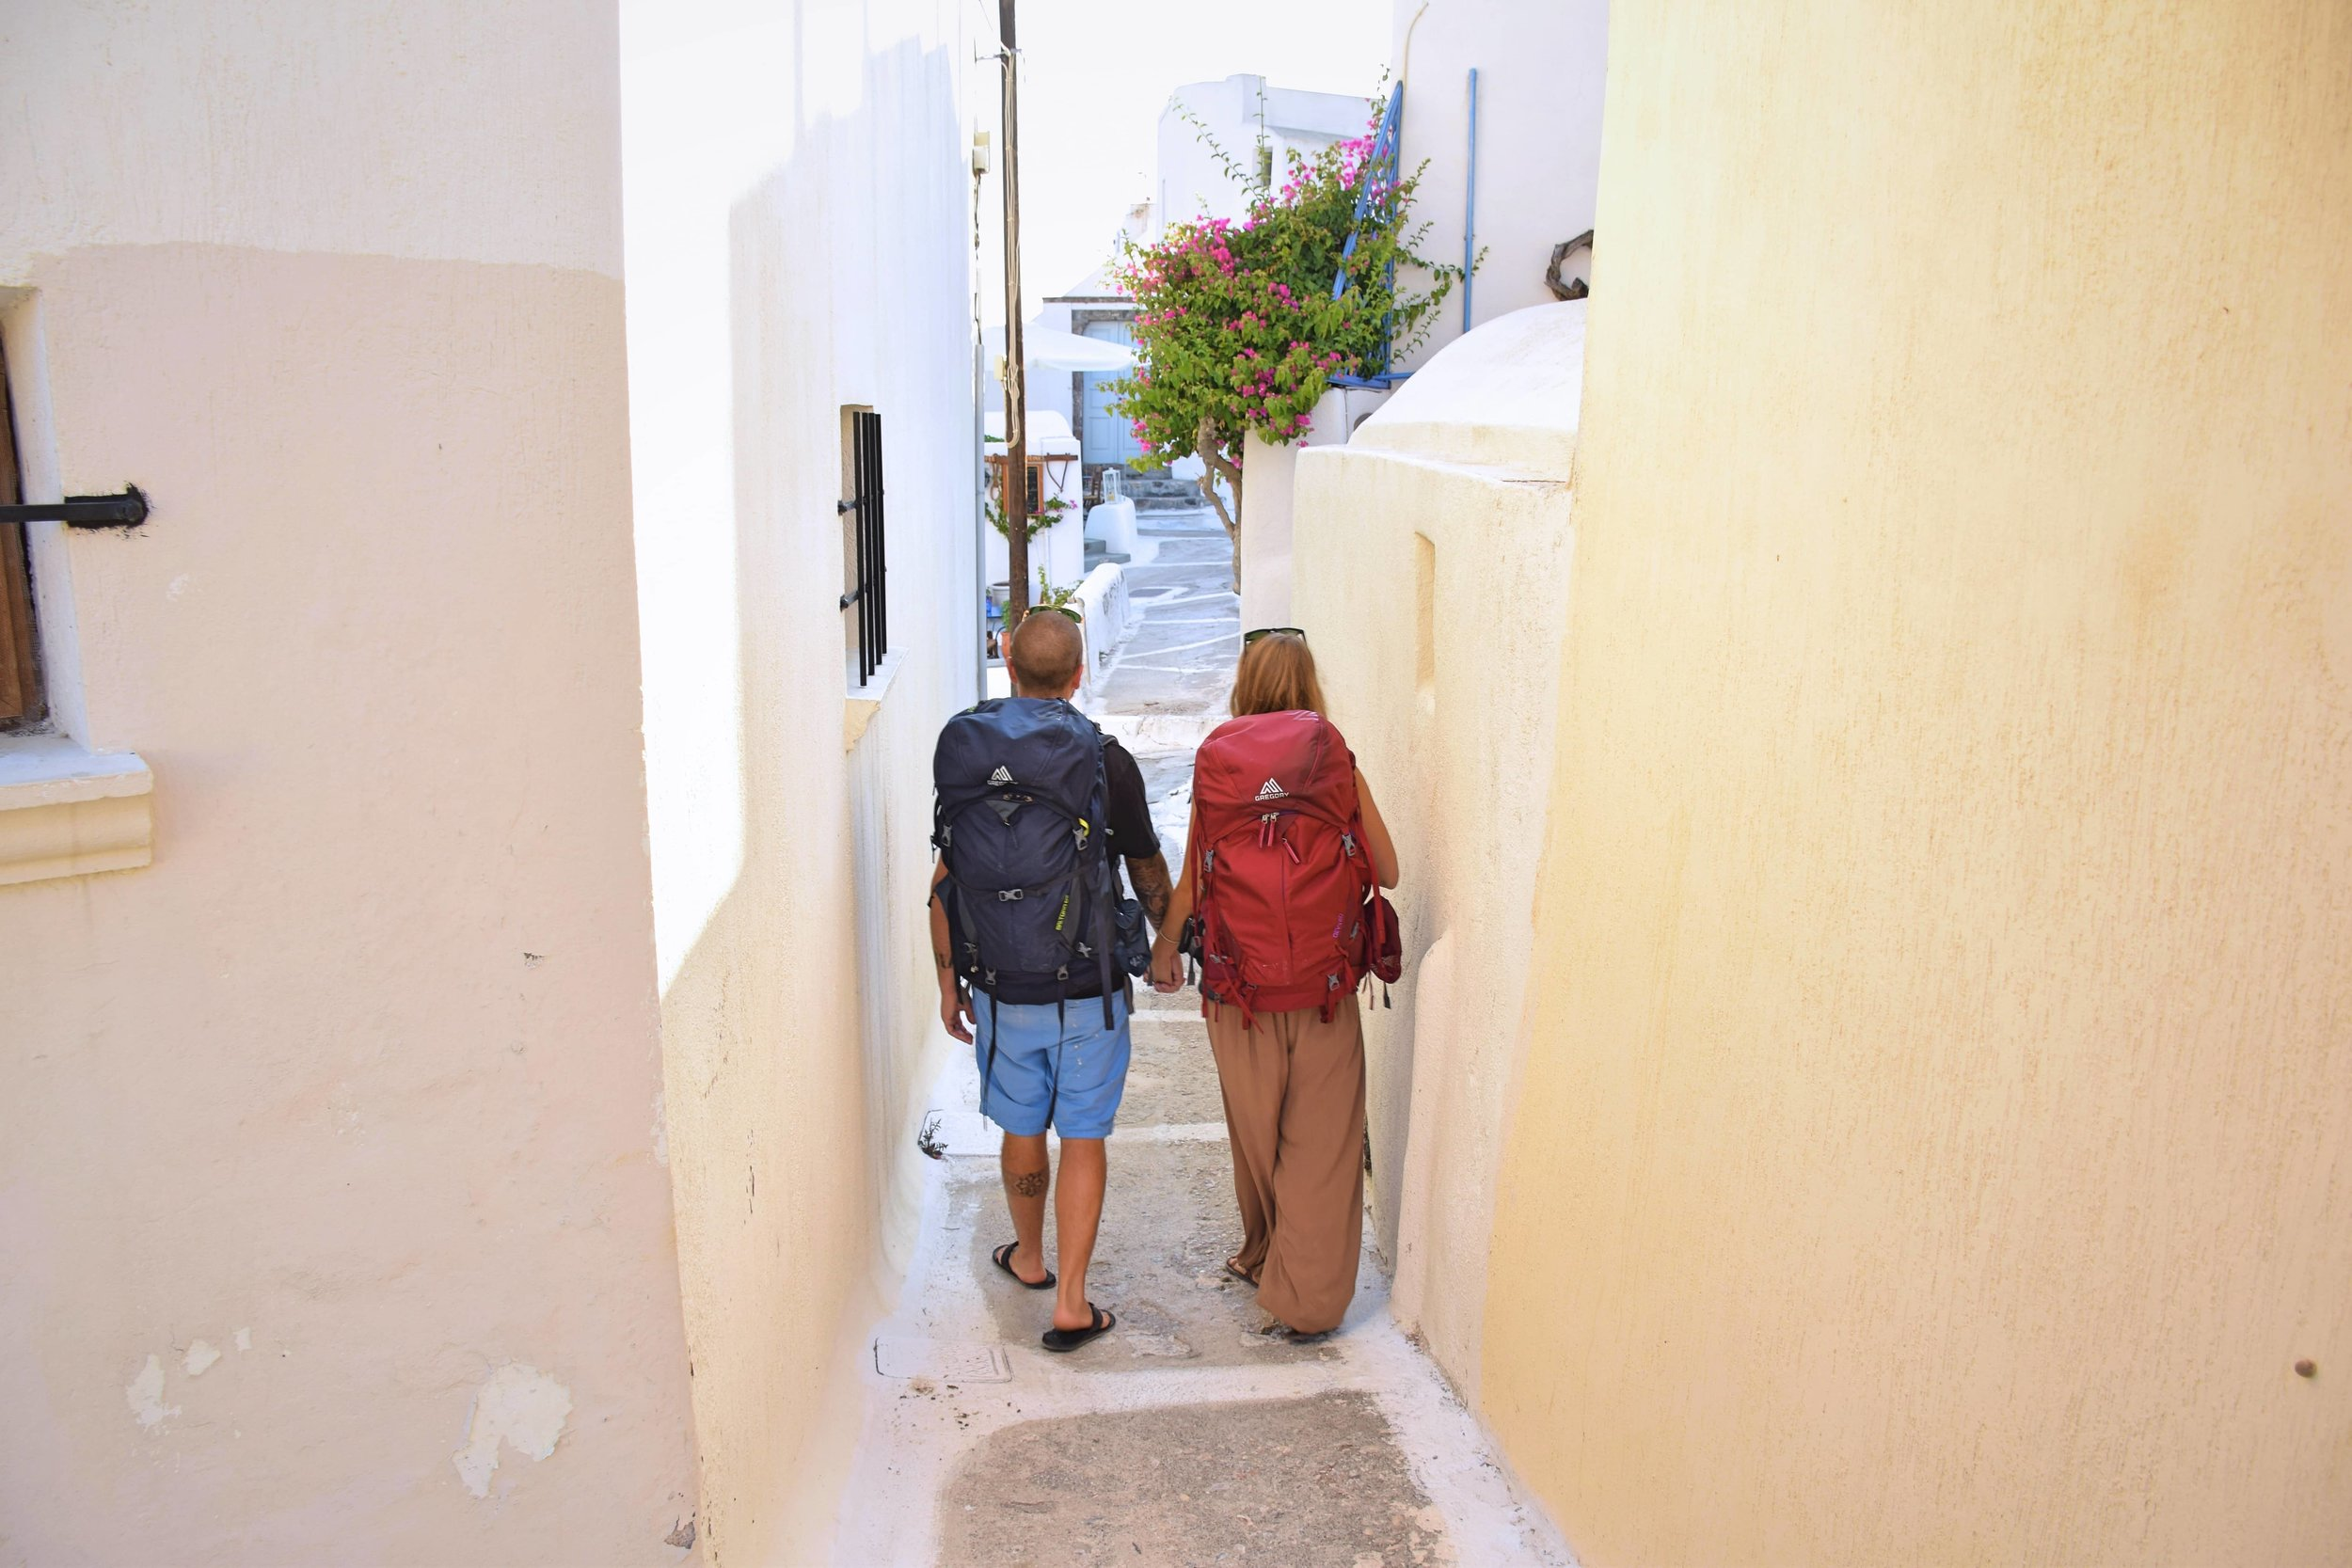 Walk -  As silly as this may sound, one of the best things to do on the island is to walk around through all the side streets, and hidden pathways, exploring - the narrow streets severely limit motor traffic as they were originally built for foot traffic only.